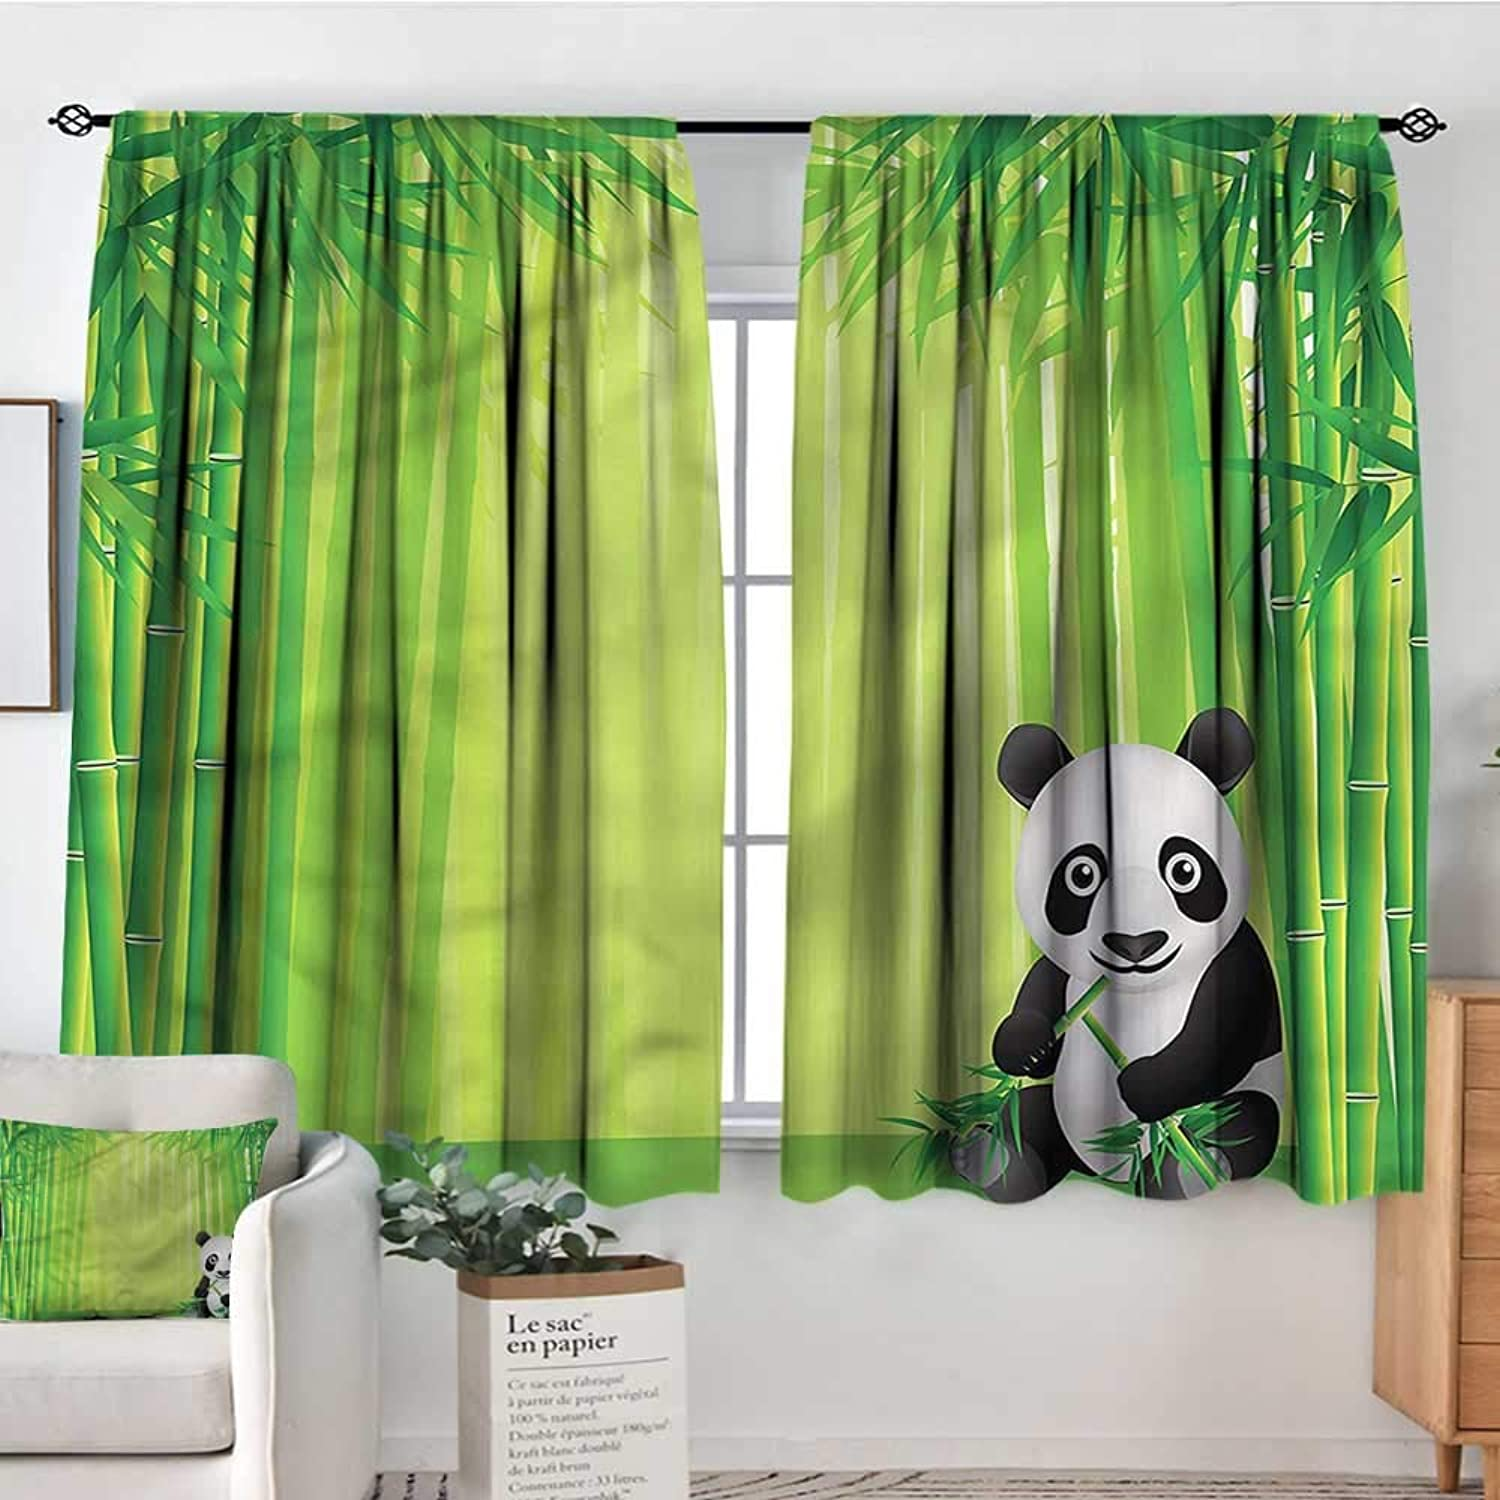 Anzhutwelve Panda,Indo Panes Drapes Bamboo Forest in Summertime 42 X45  Kids Backout Curtains for Bedroom